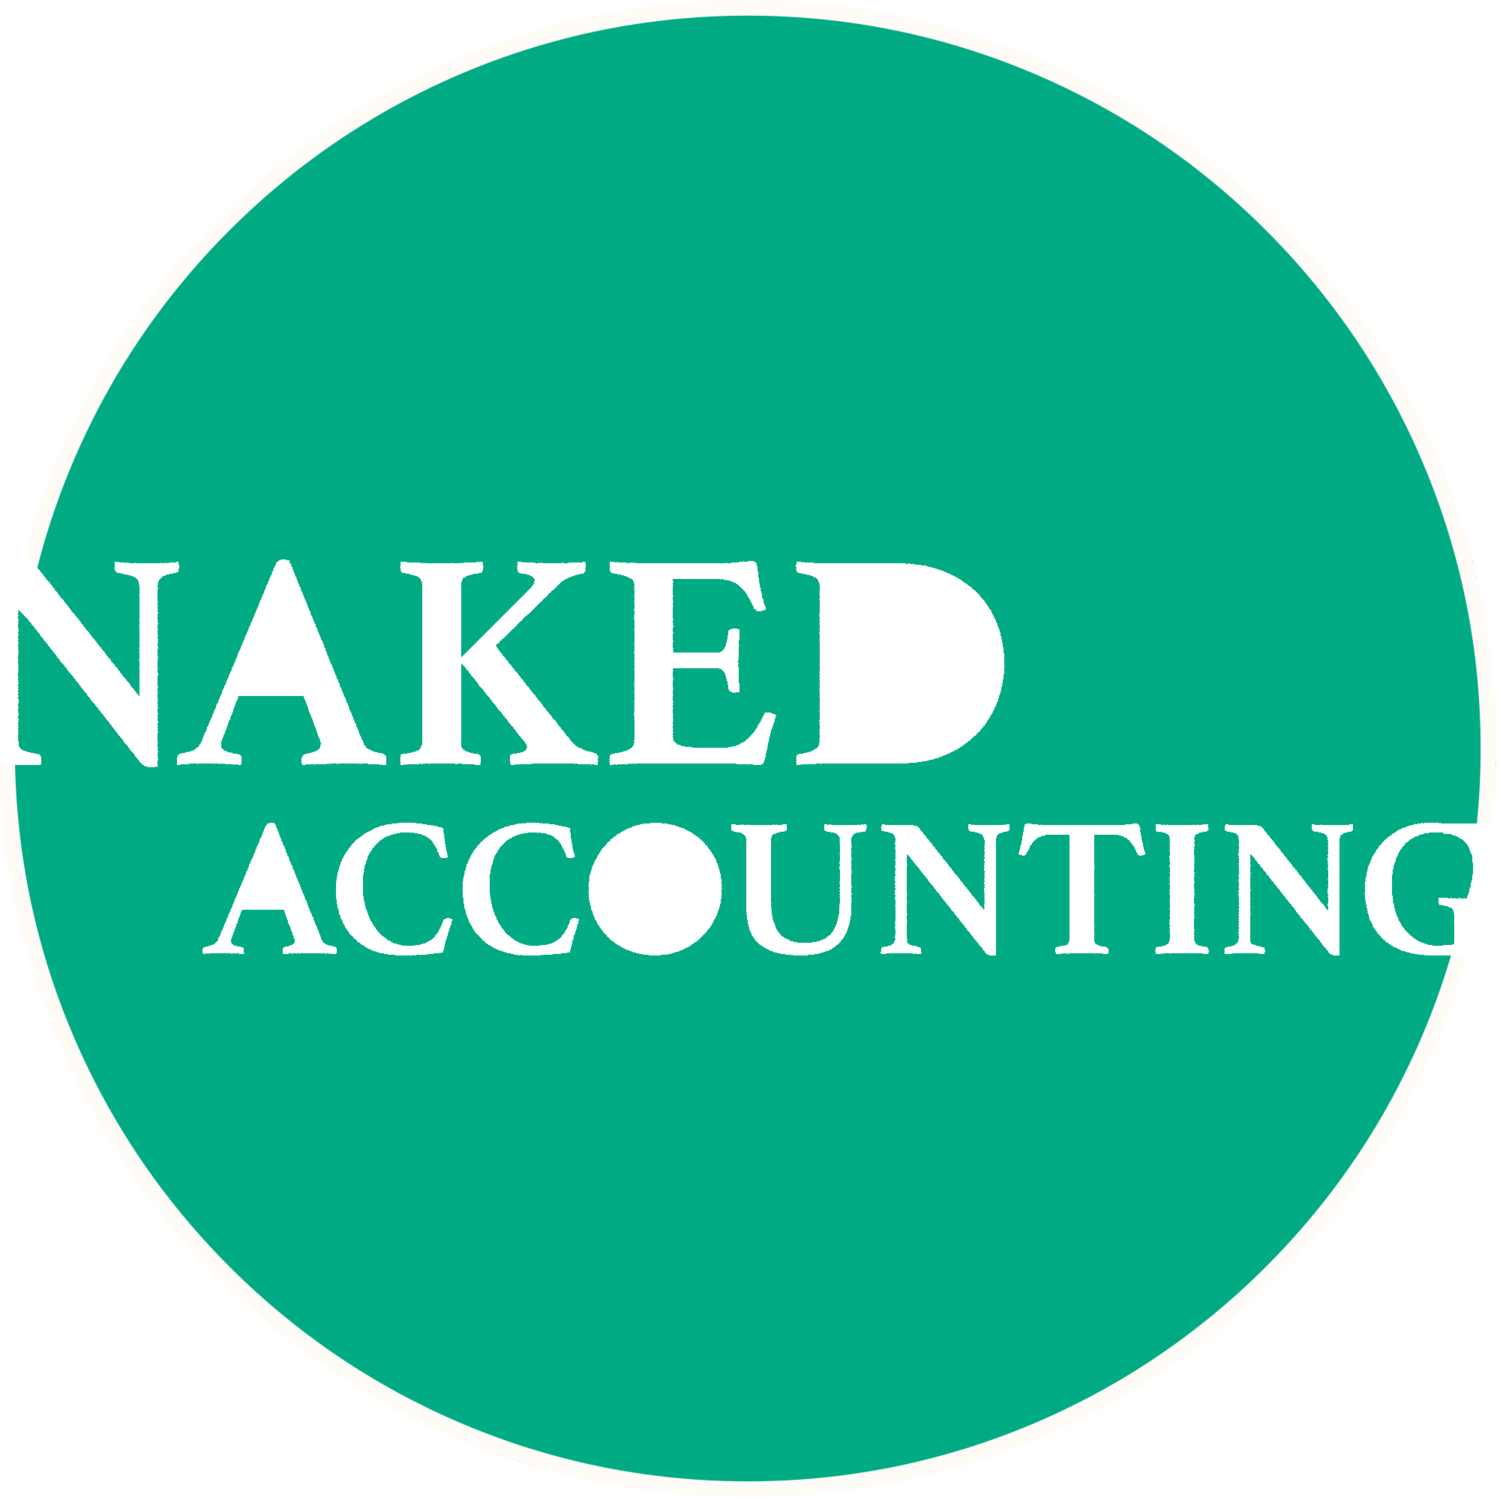 Naked Accounting